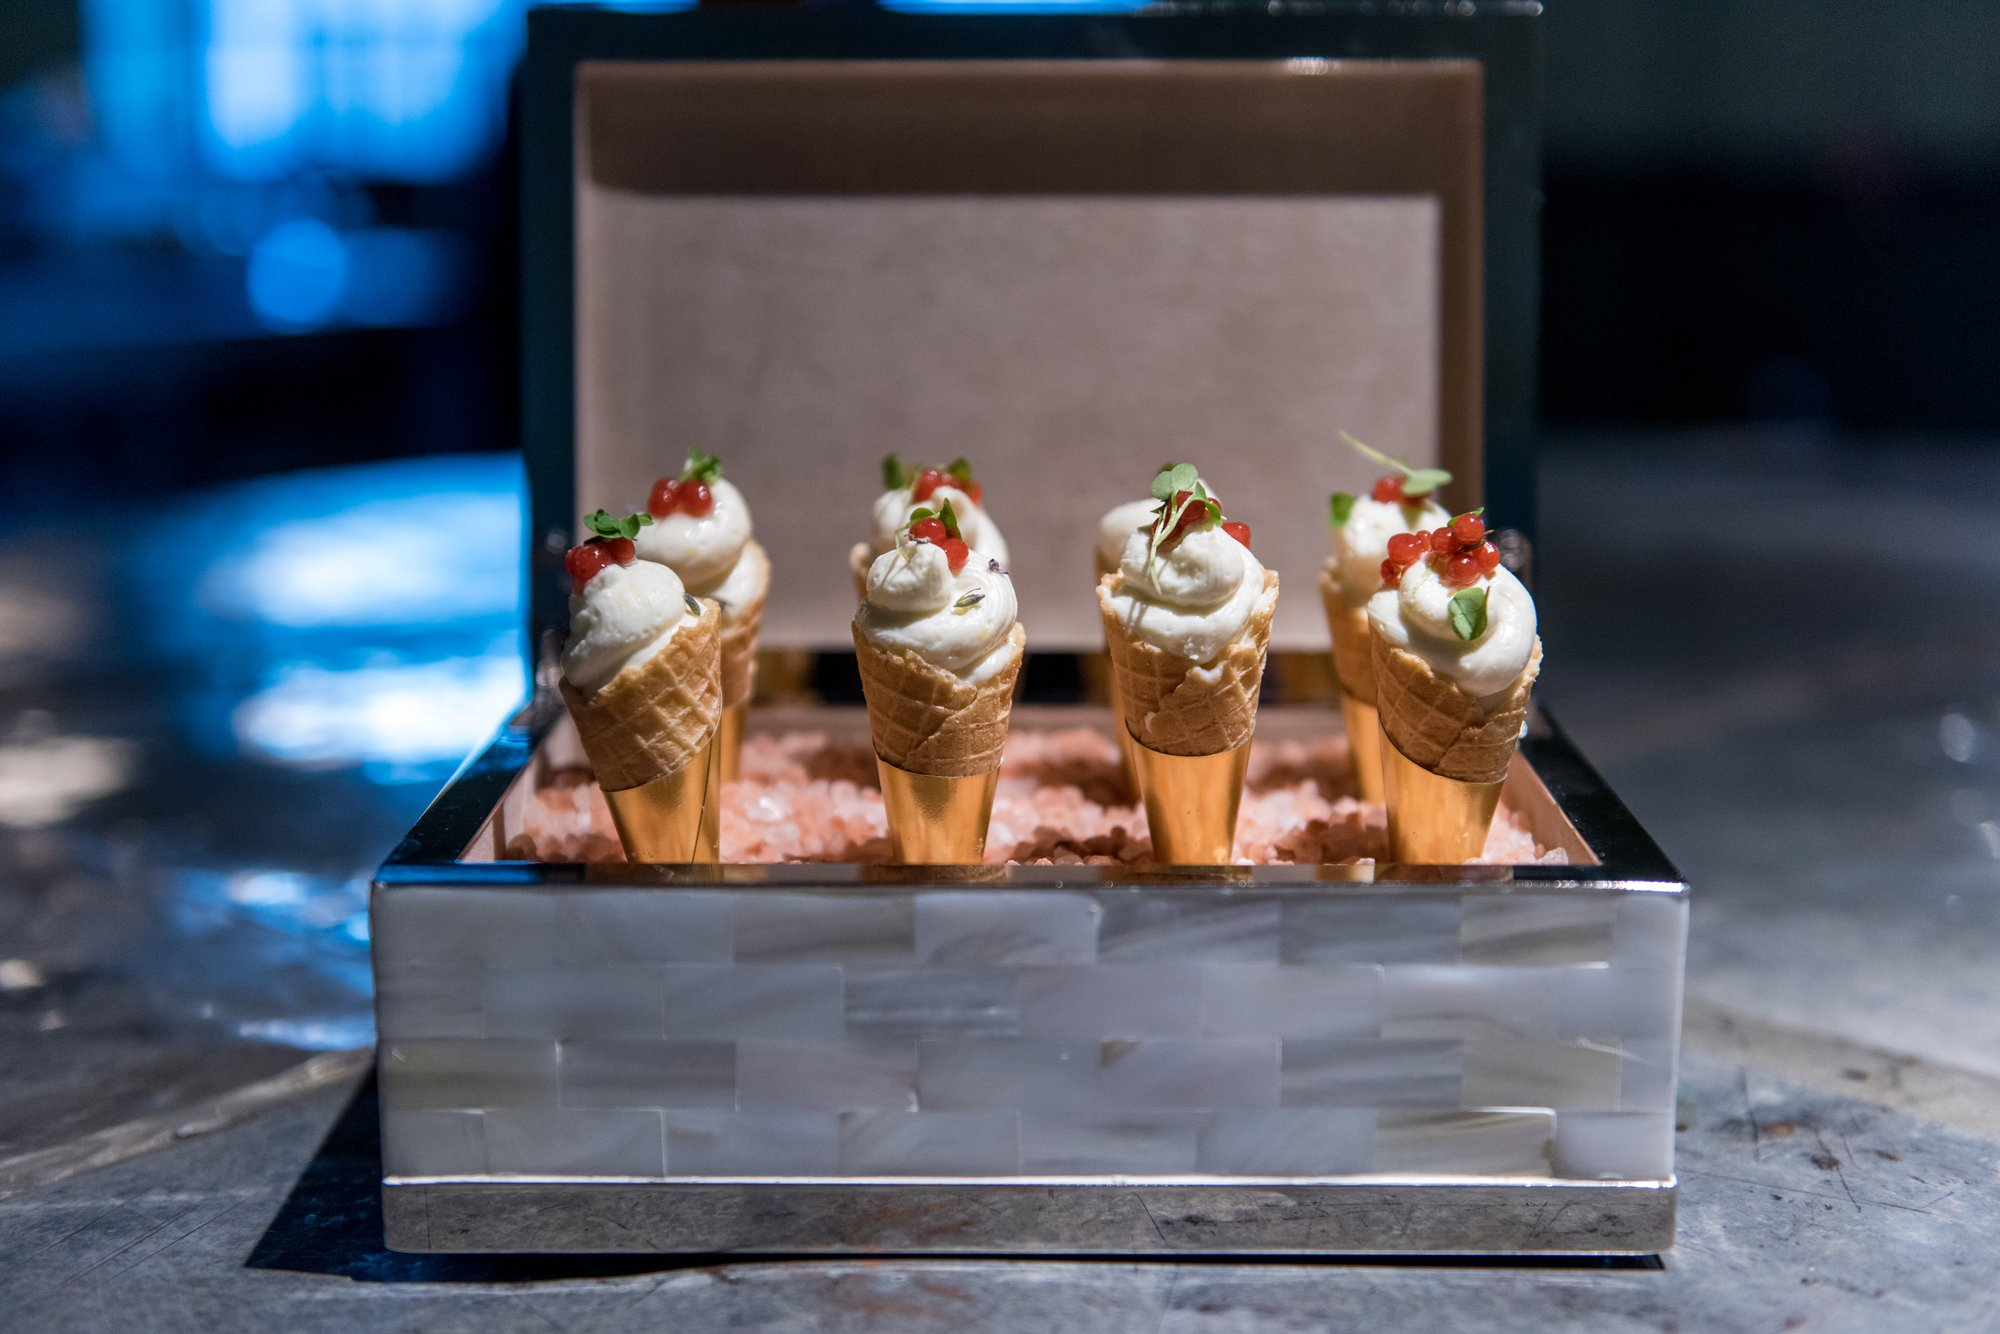 Miniature Lemon Cheesecake Cones with Strawberry Pearls and Lavender from Washington, DC caterer Get Plated